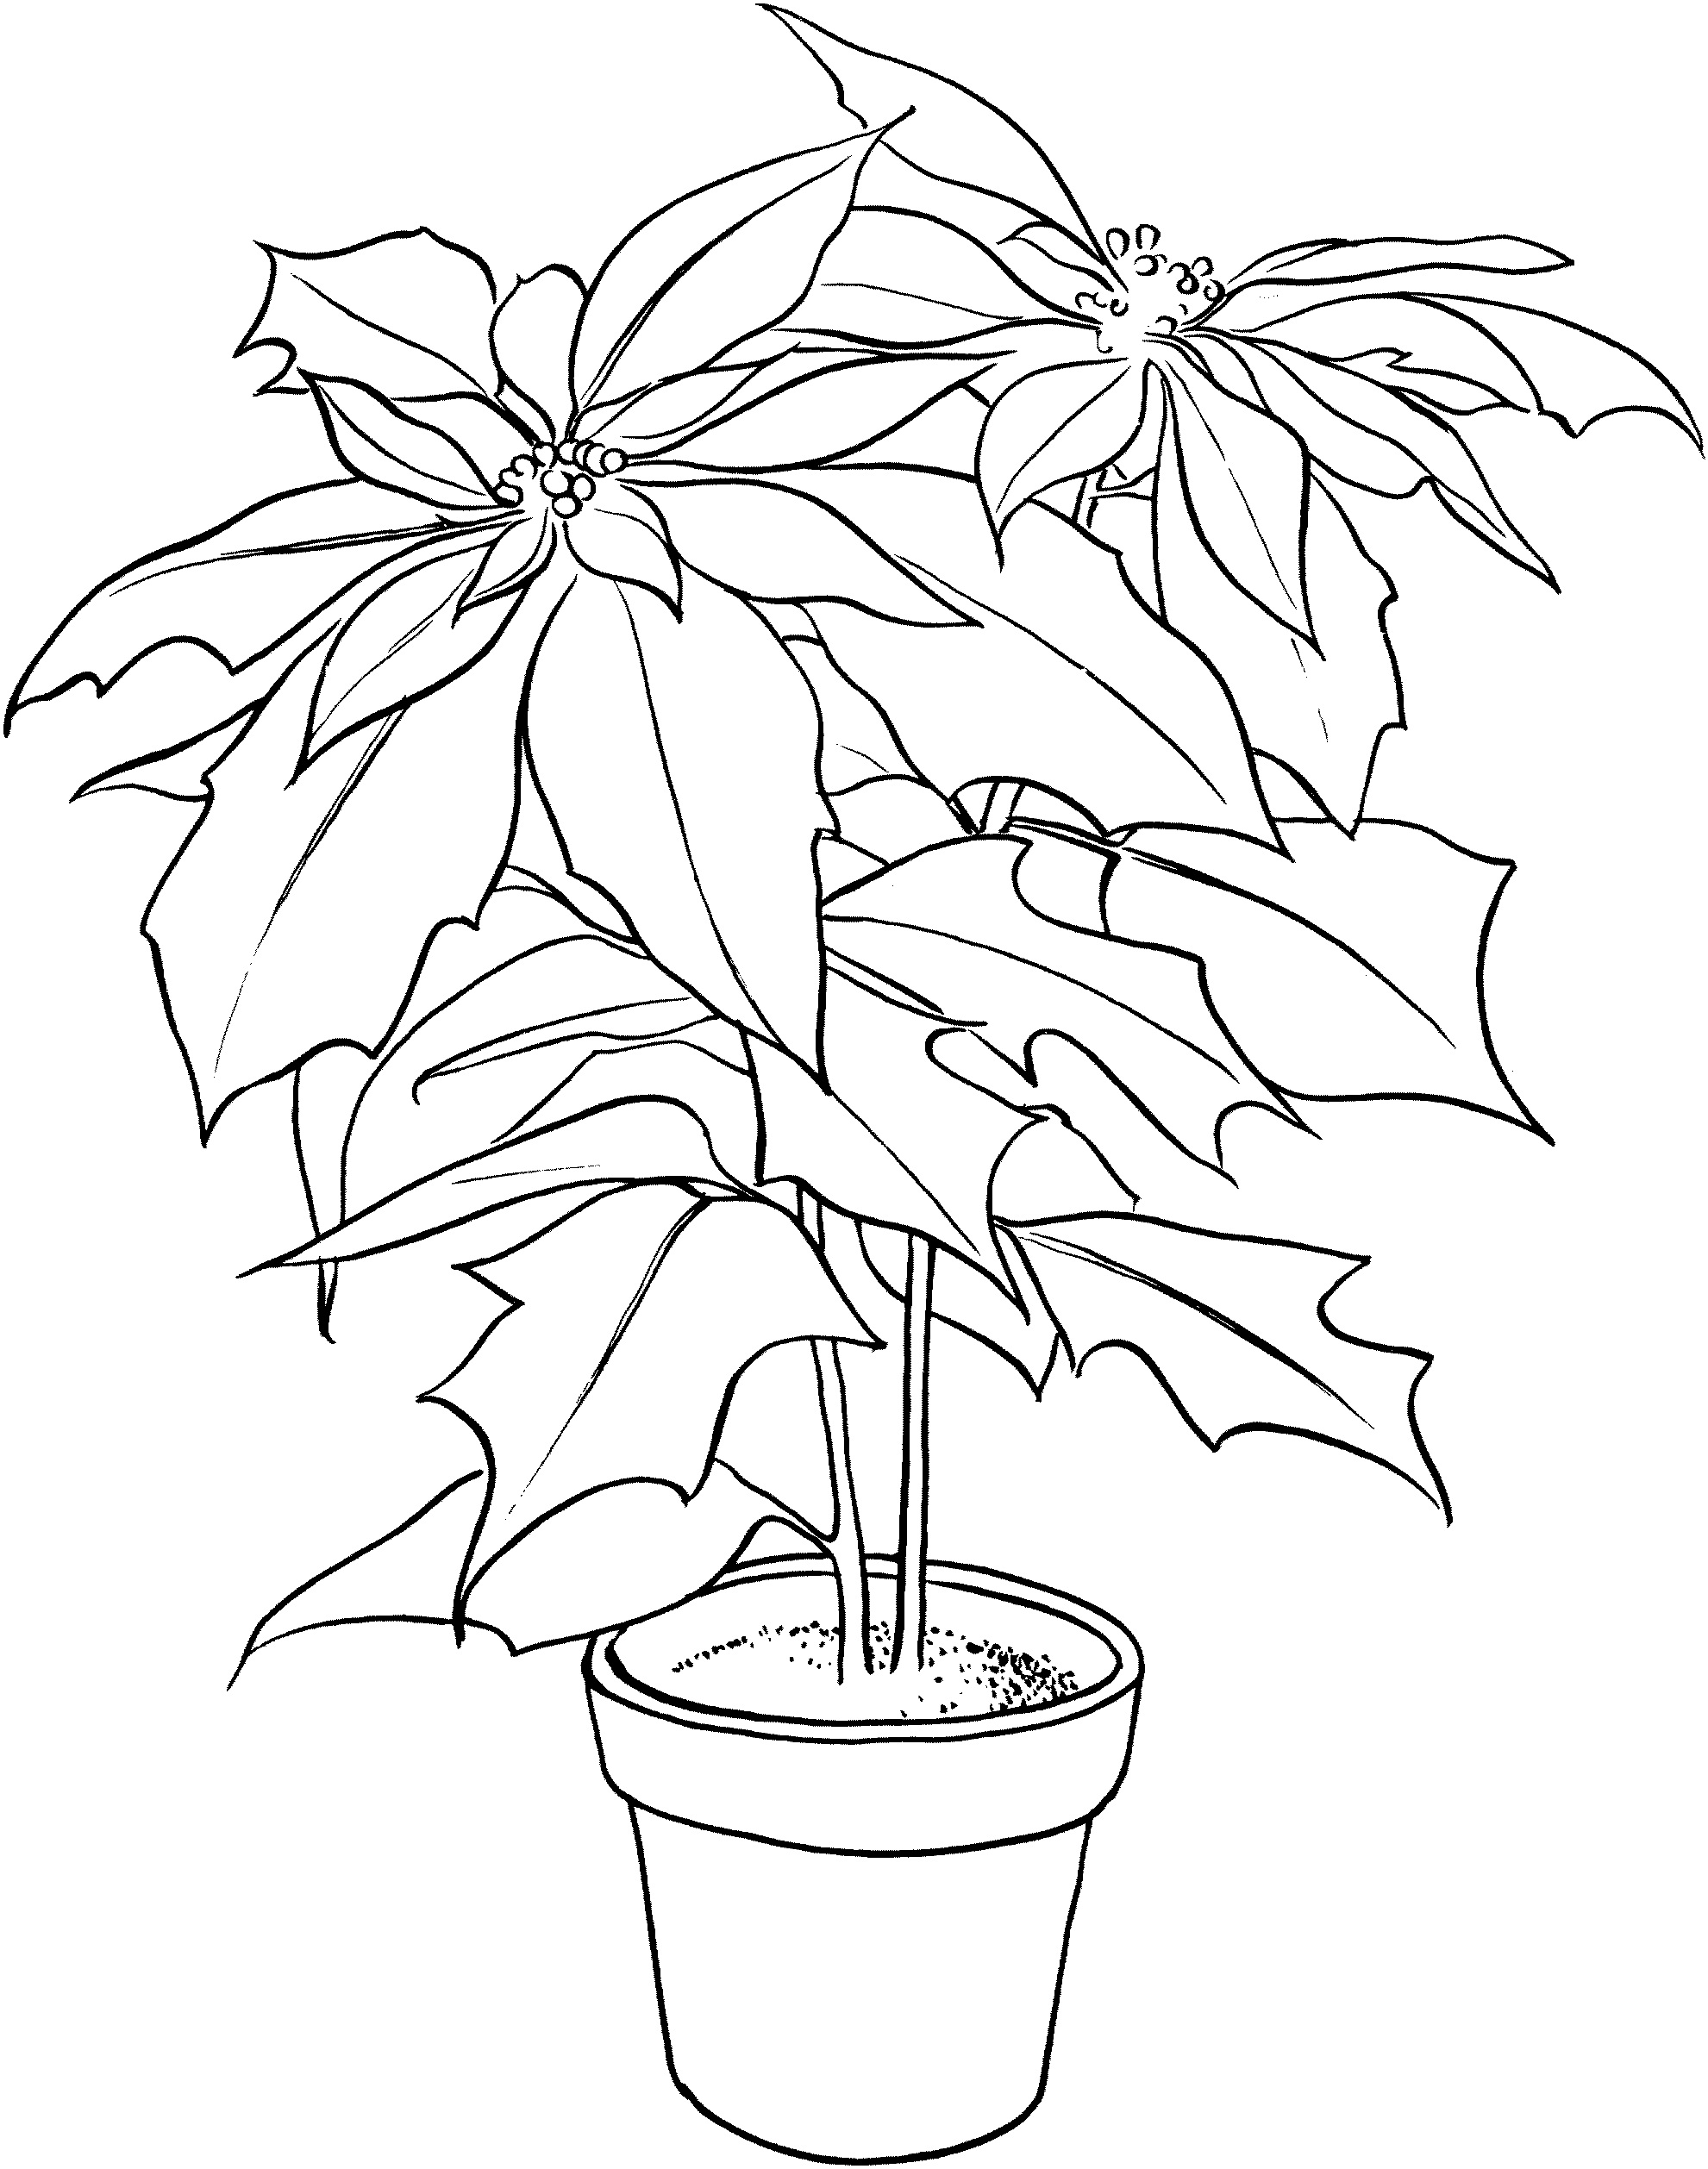 poinsettia coloring pages free printable poinsettia coloring pages for kids poinsettia pages coloring